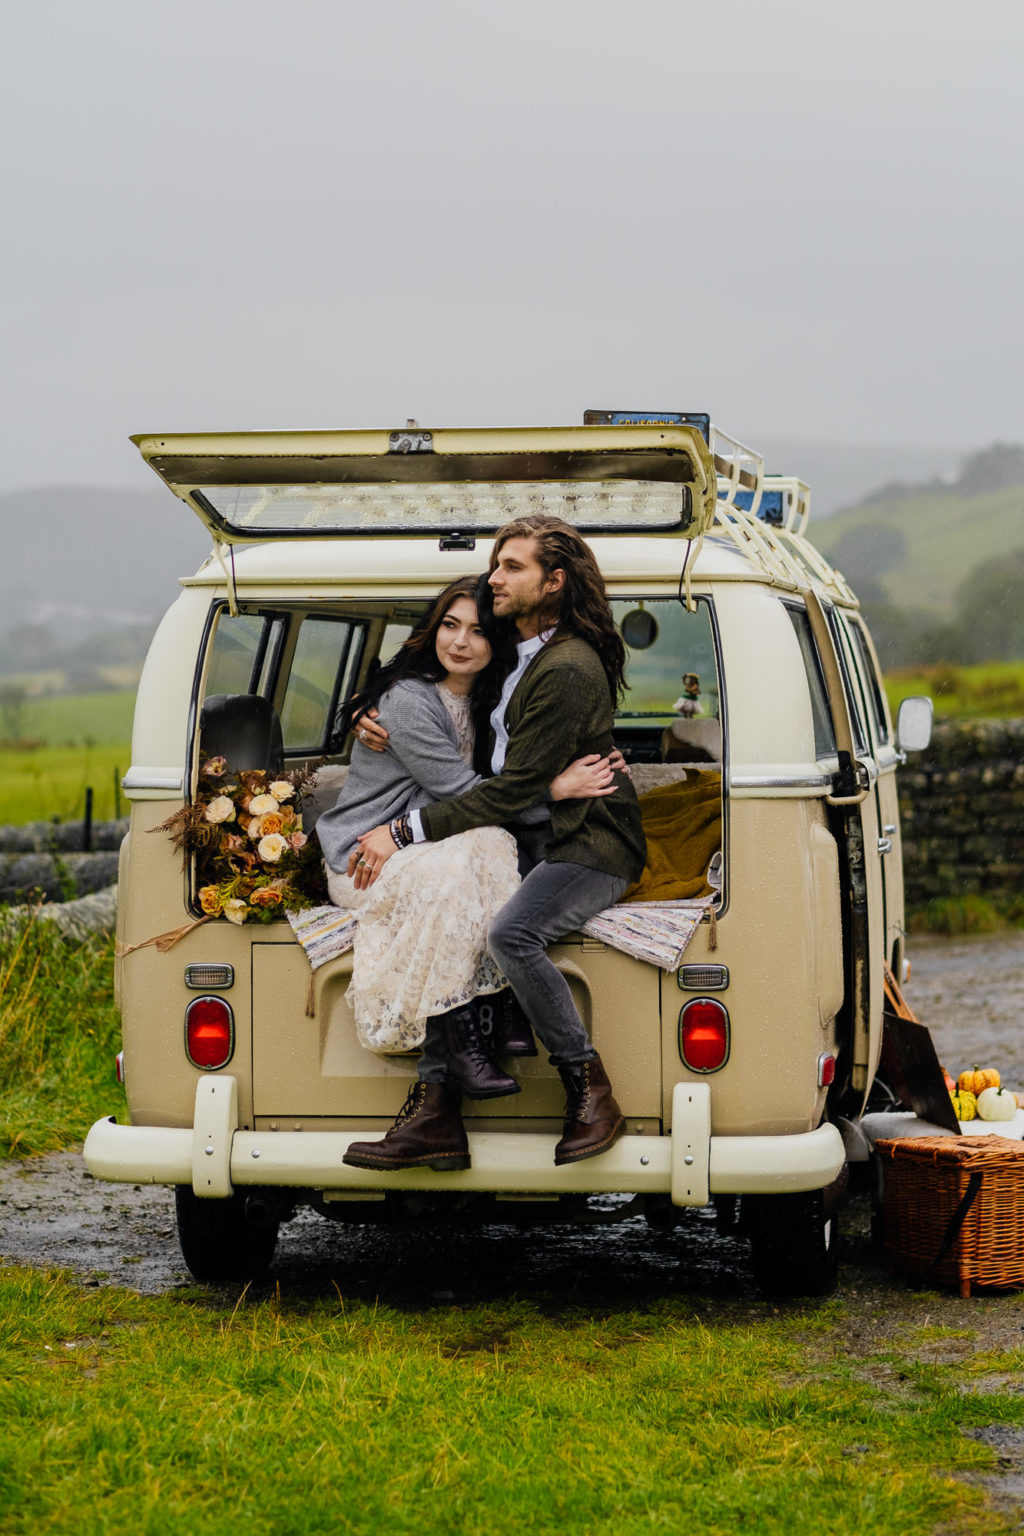 Romantic Intimate Elopement at Saddleworth Moor Yorkshire